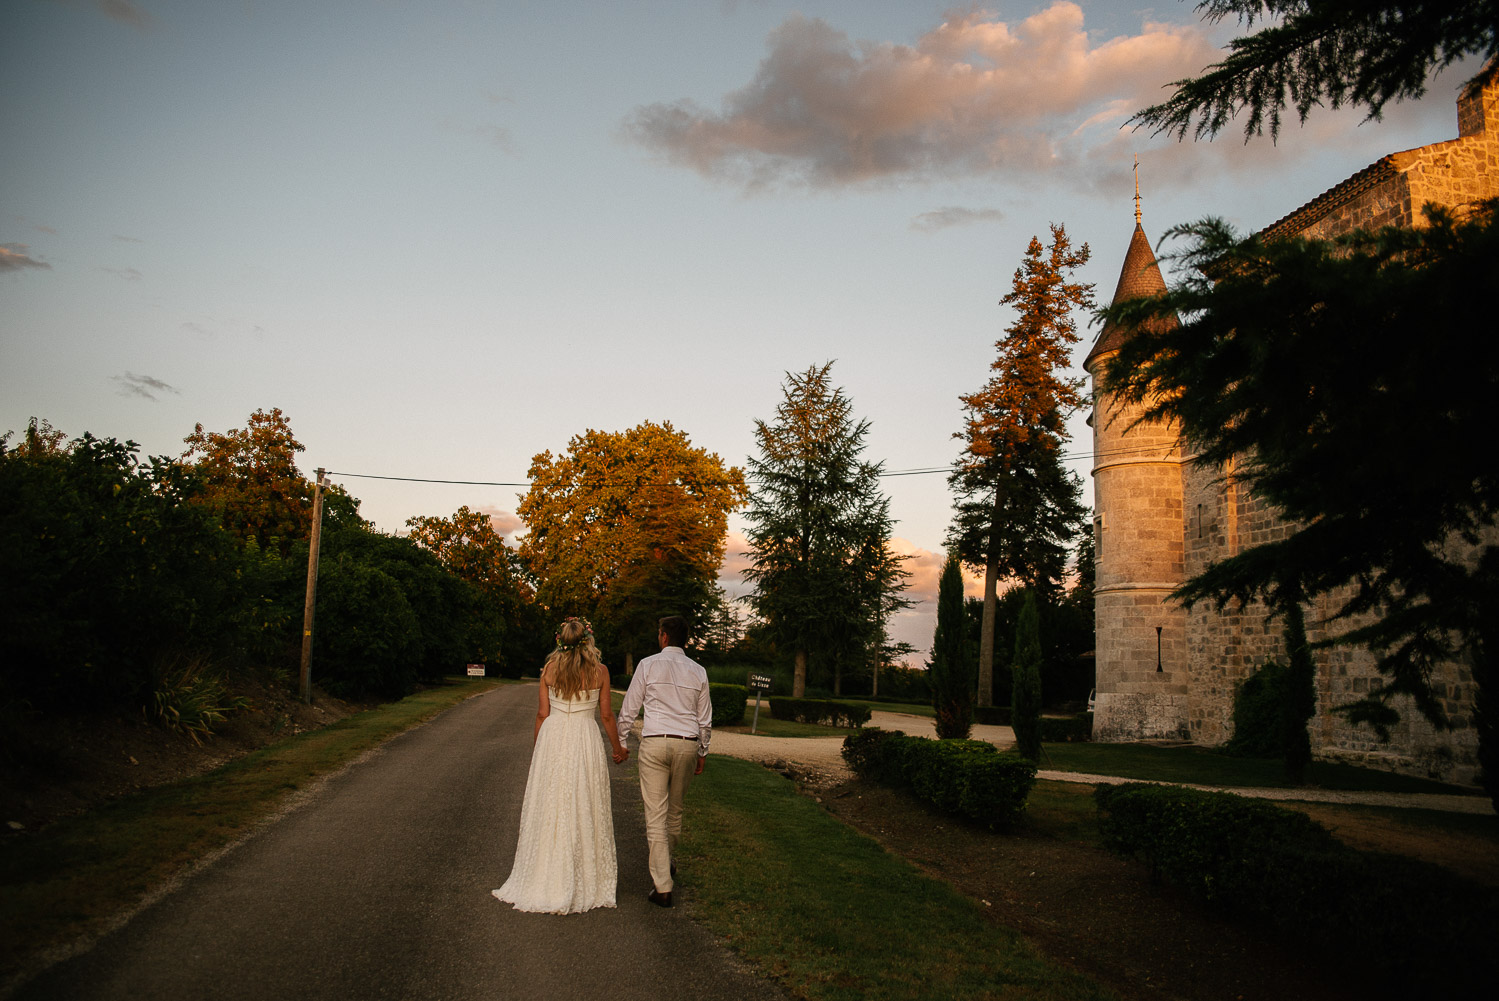 chateau_de_lisse_gers_wedding_katy_webb_photography_france_UK114